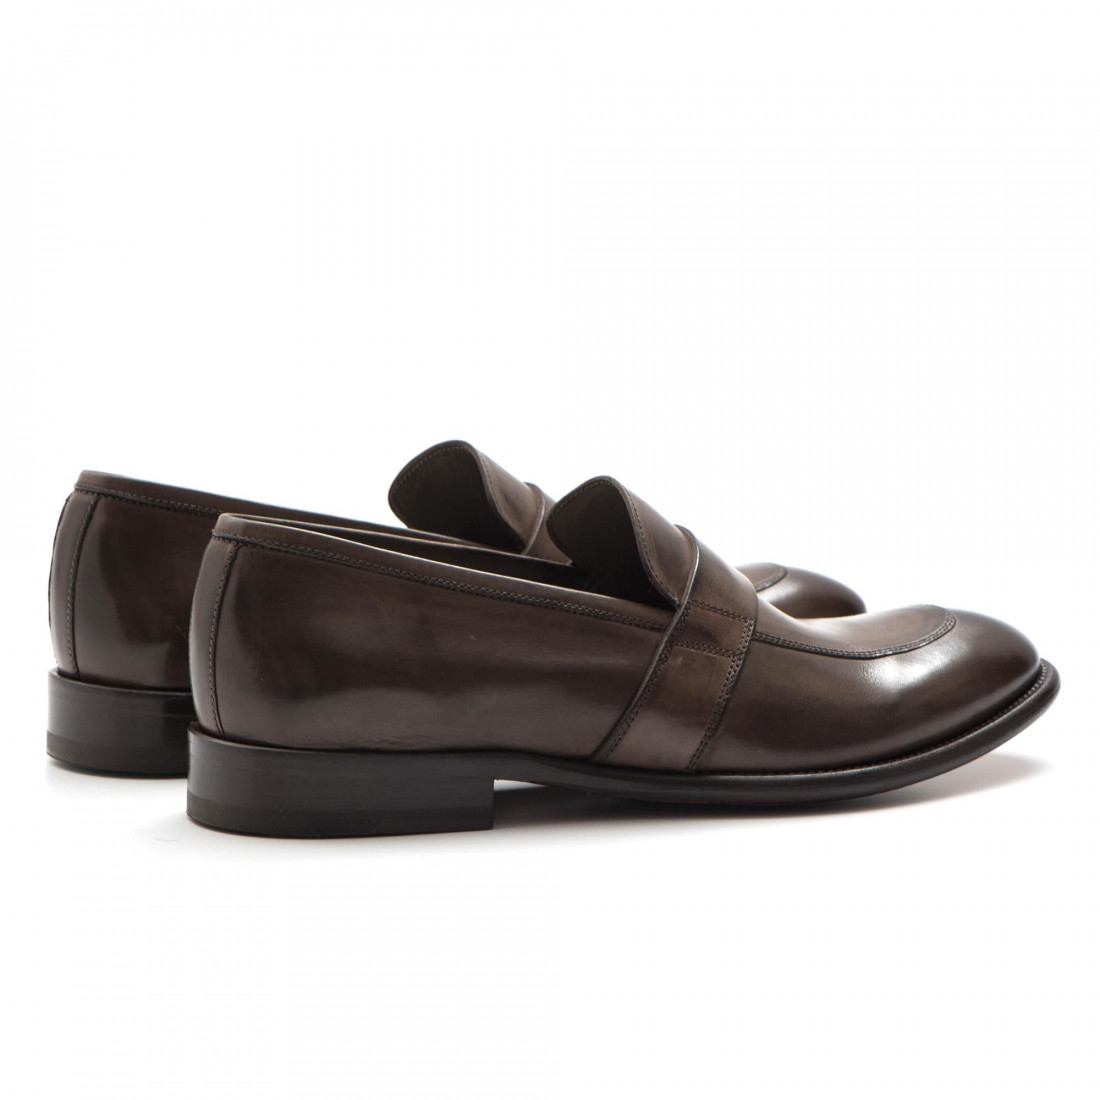 loafers man brecos 758712634 montec del taupe 3316